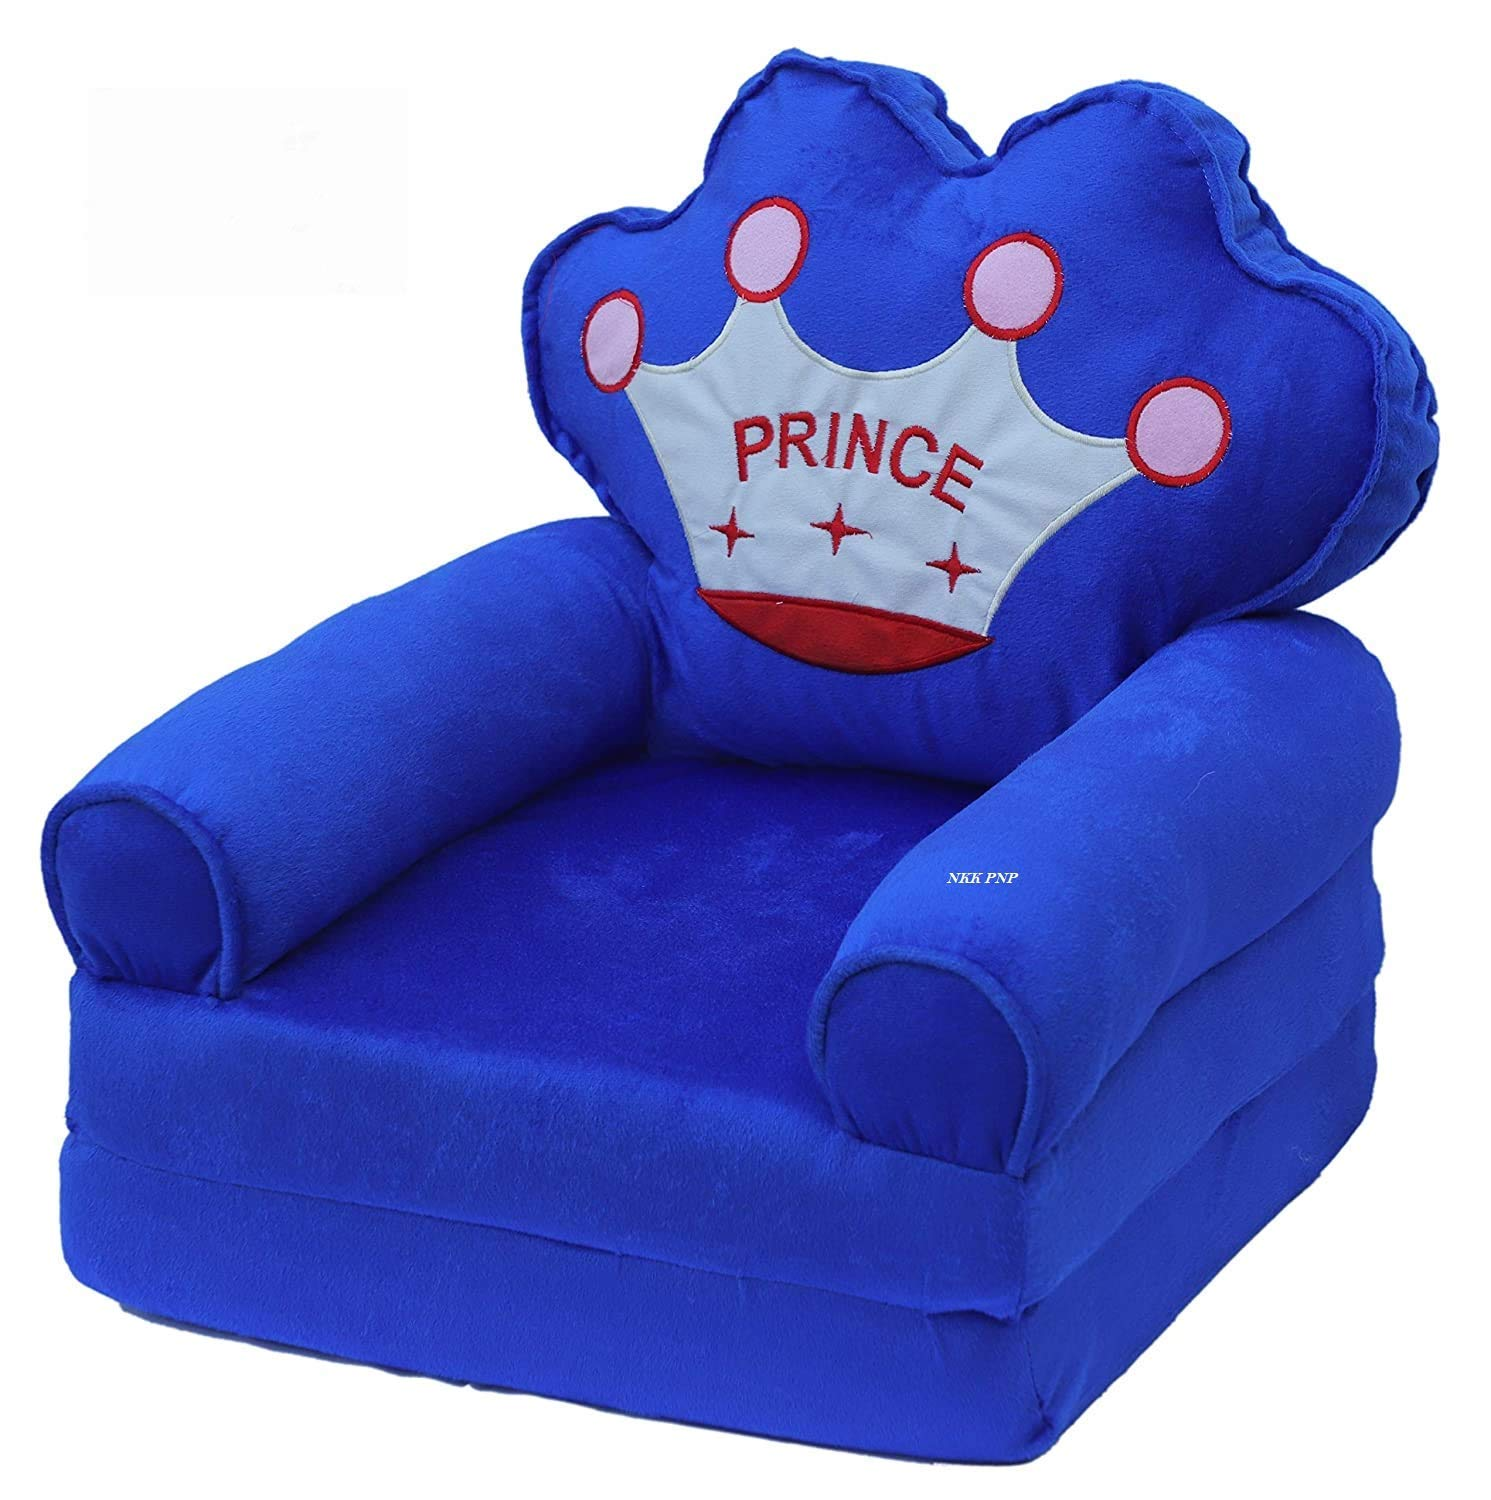 COROID Sofa Cum Bed Back SEAT Shape Imported Soft Toy Chair/seat for Baby Sitting/Soft Toy Chair for Kids (Age - 0-2 Years) (Blue/Red/Pink_Color) (Blue)